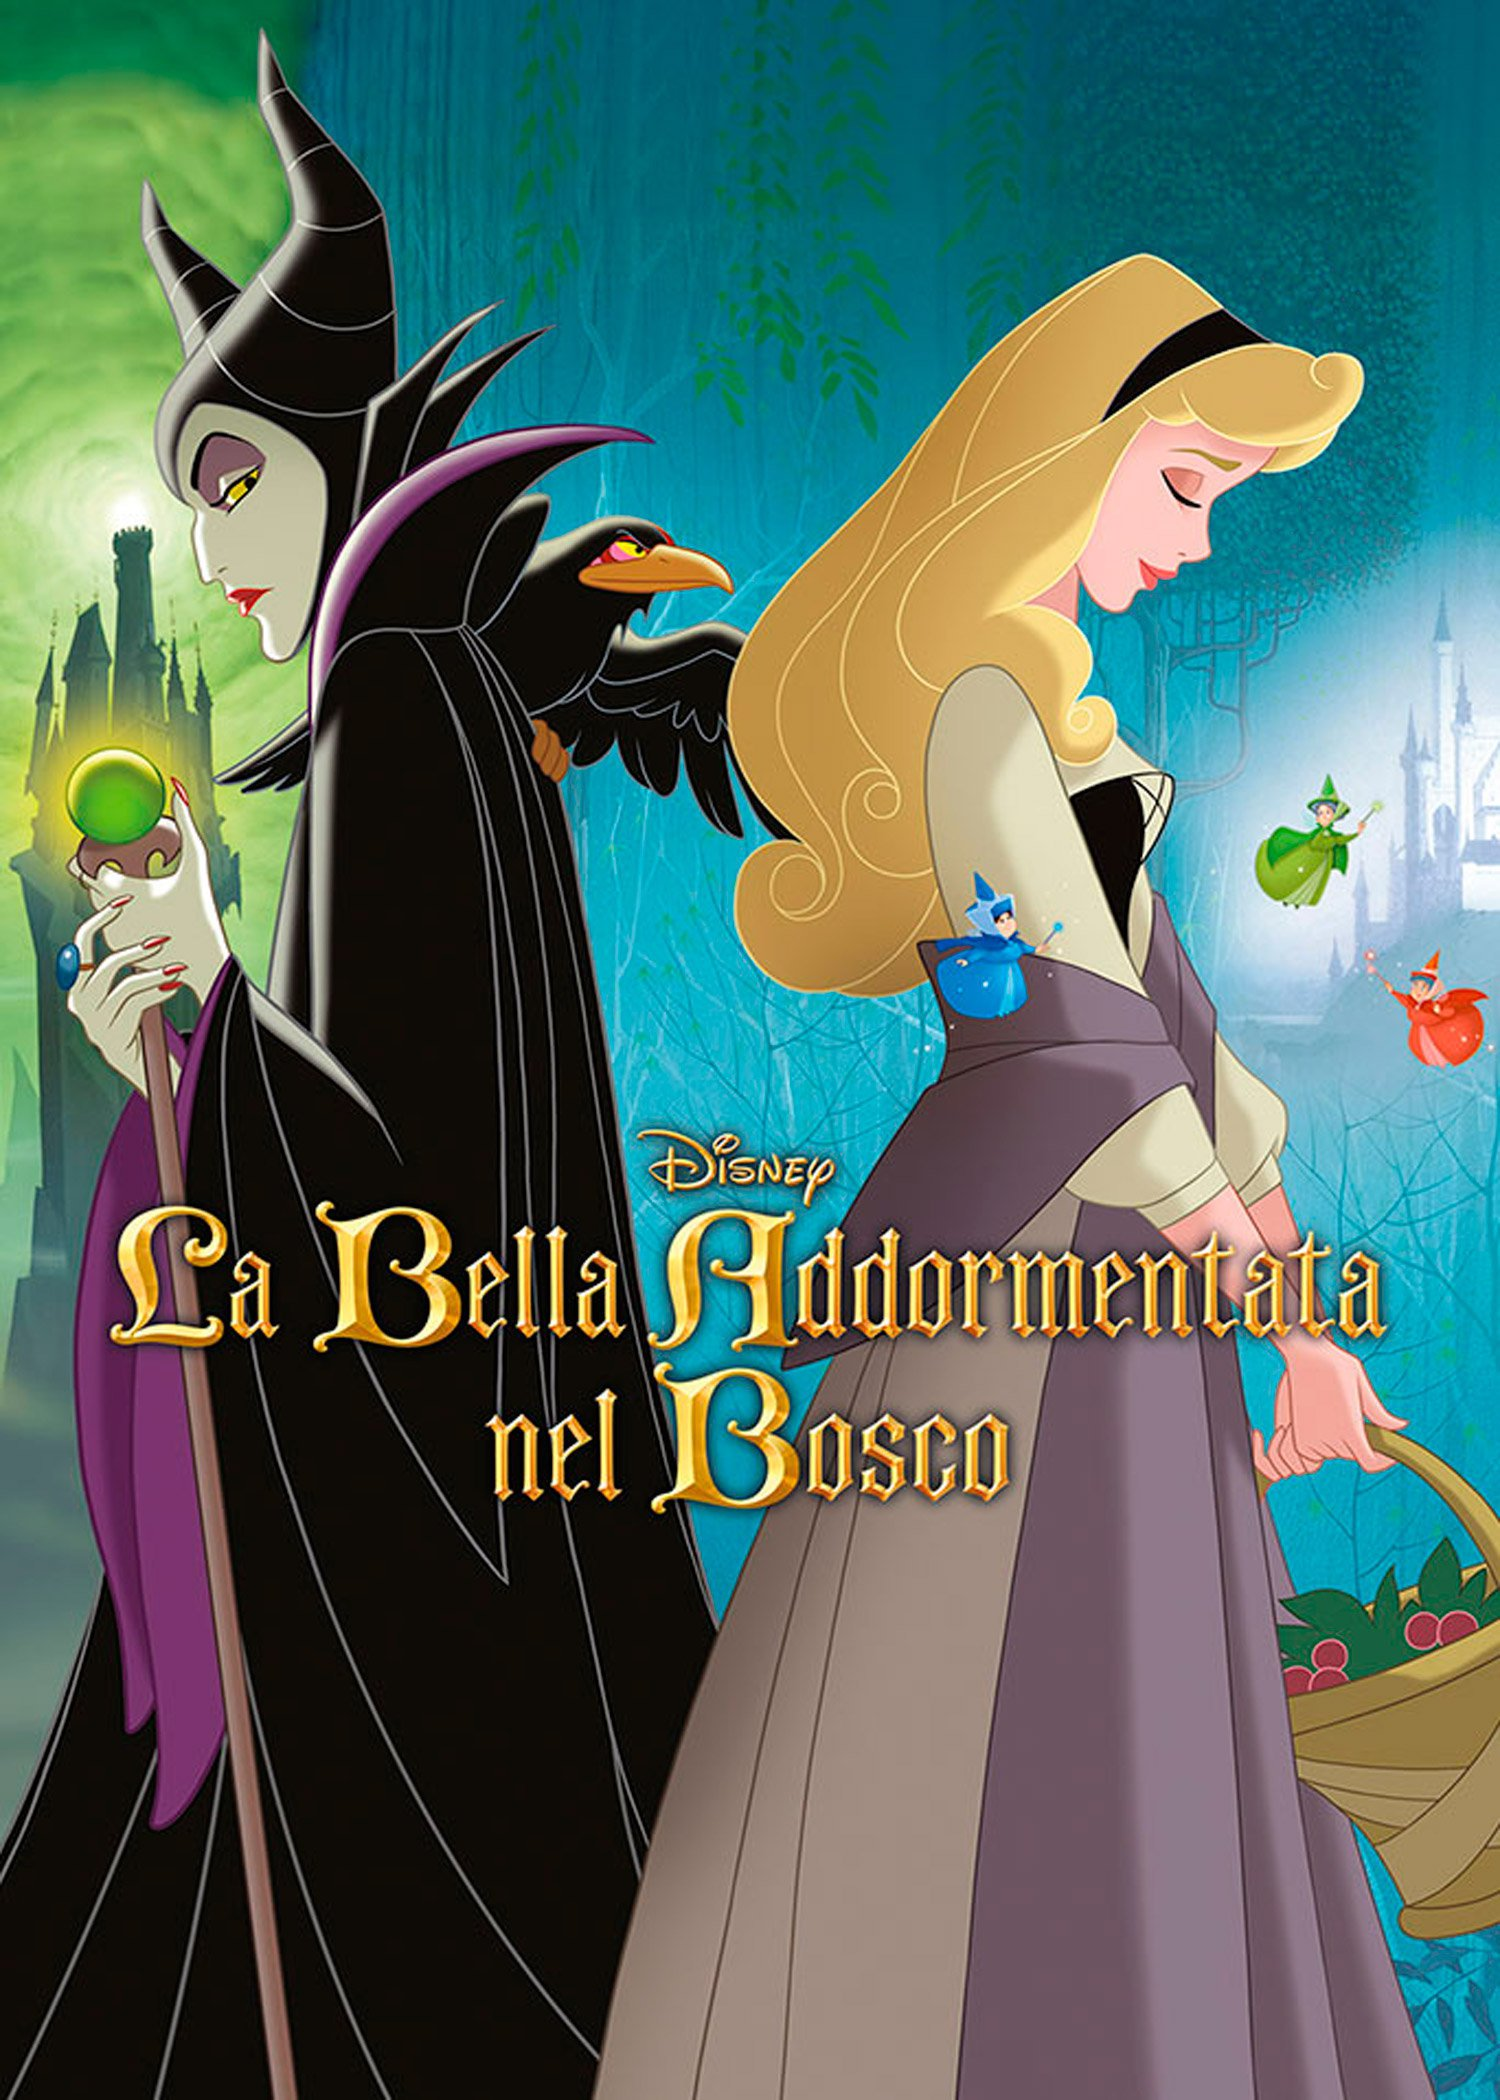 Dvd la bella addormentata nel bosco dvd e blu ray film for La cabina nel bosco 2 film completo